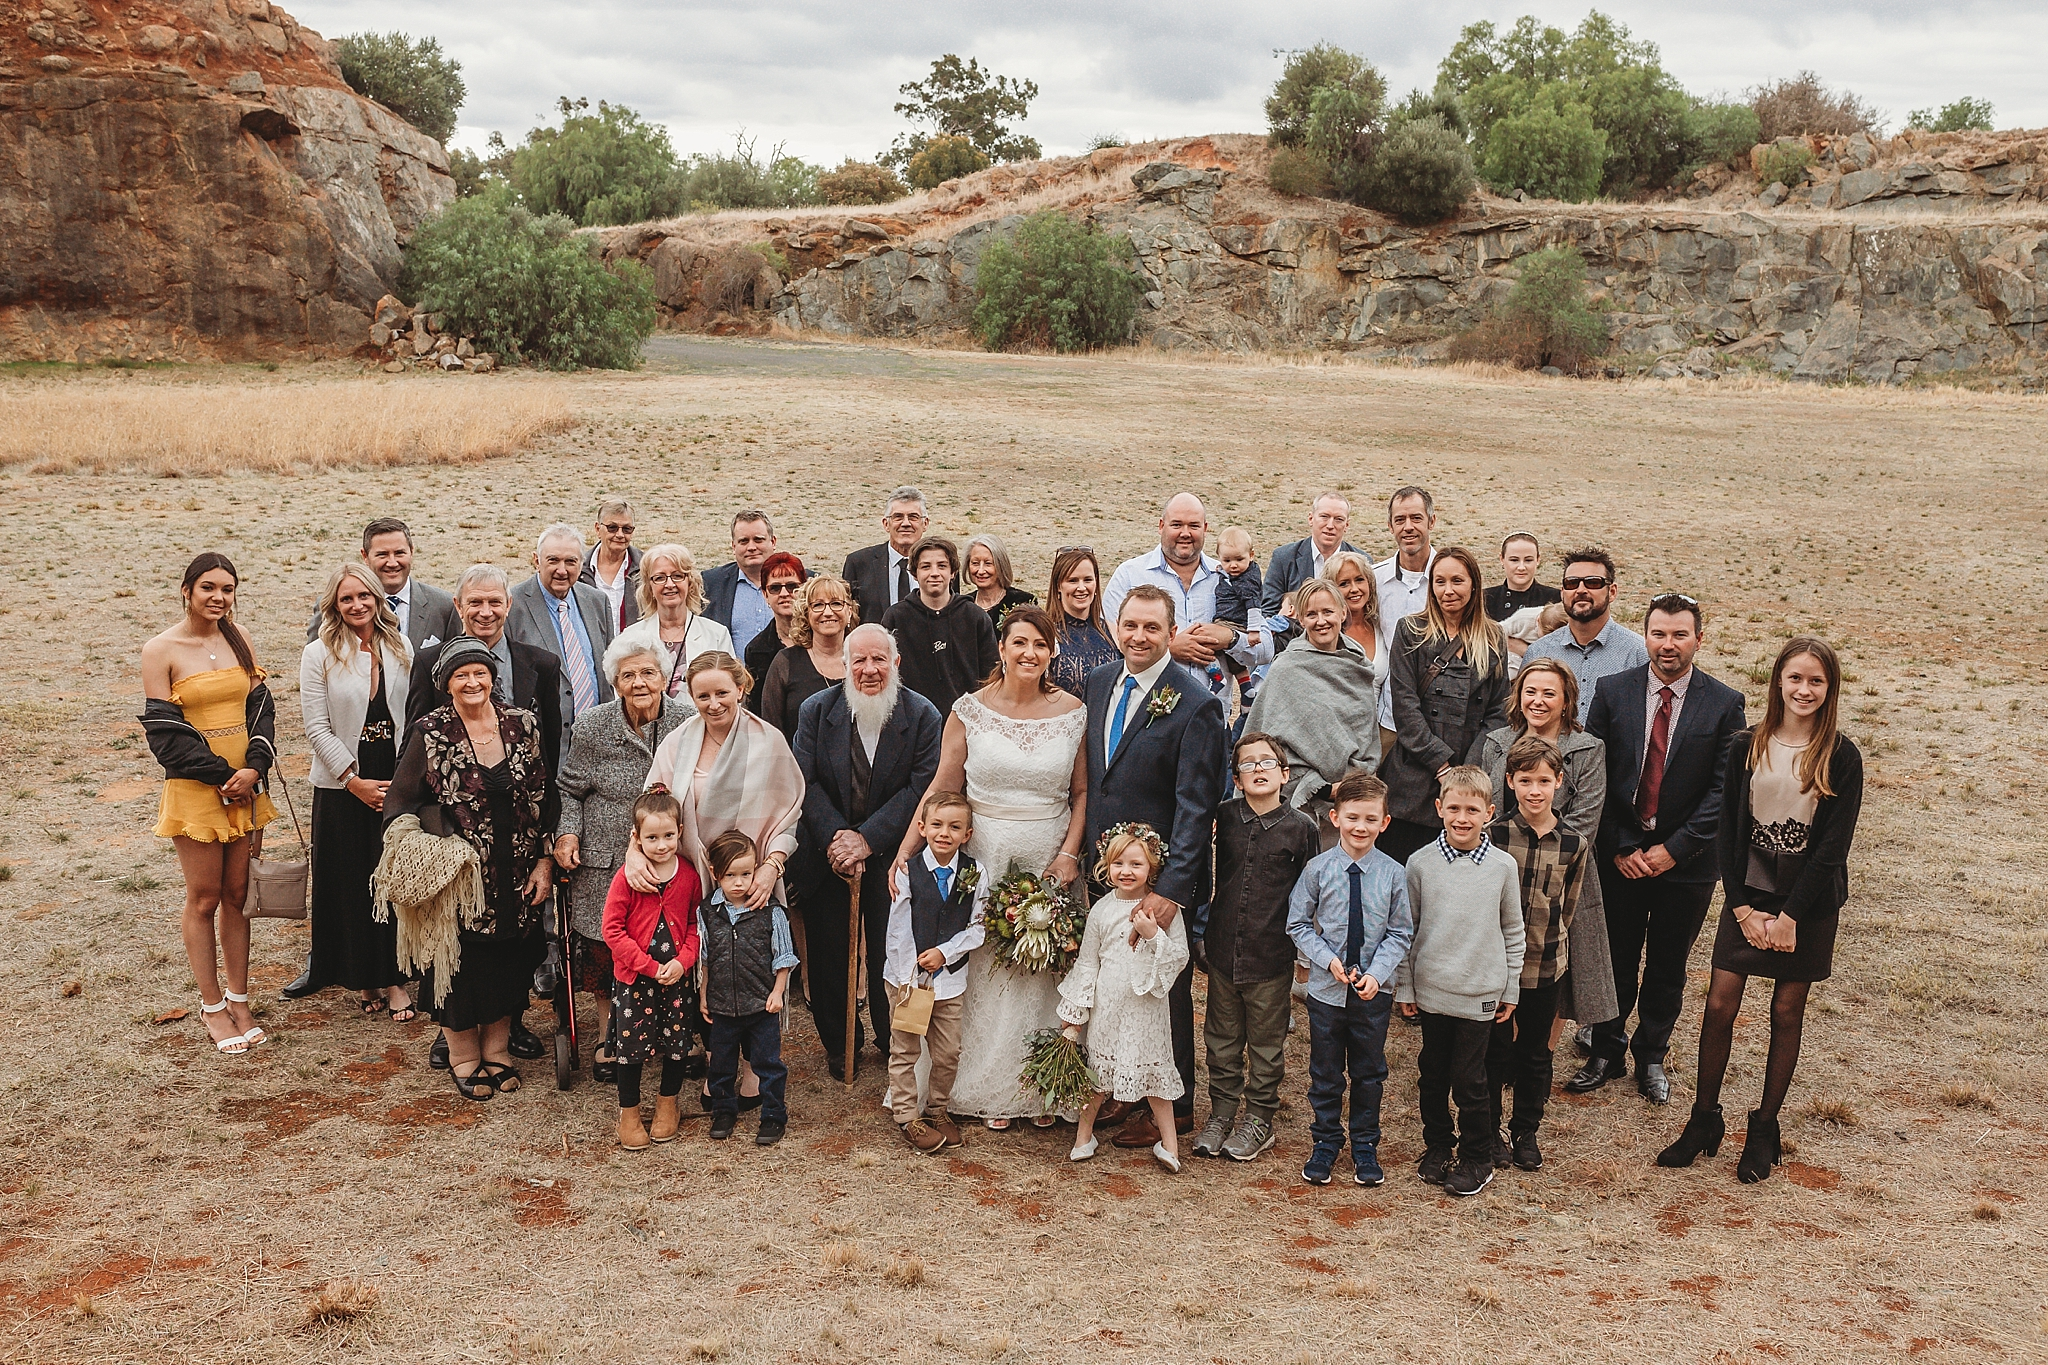 wedding group photo at dookie quarry